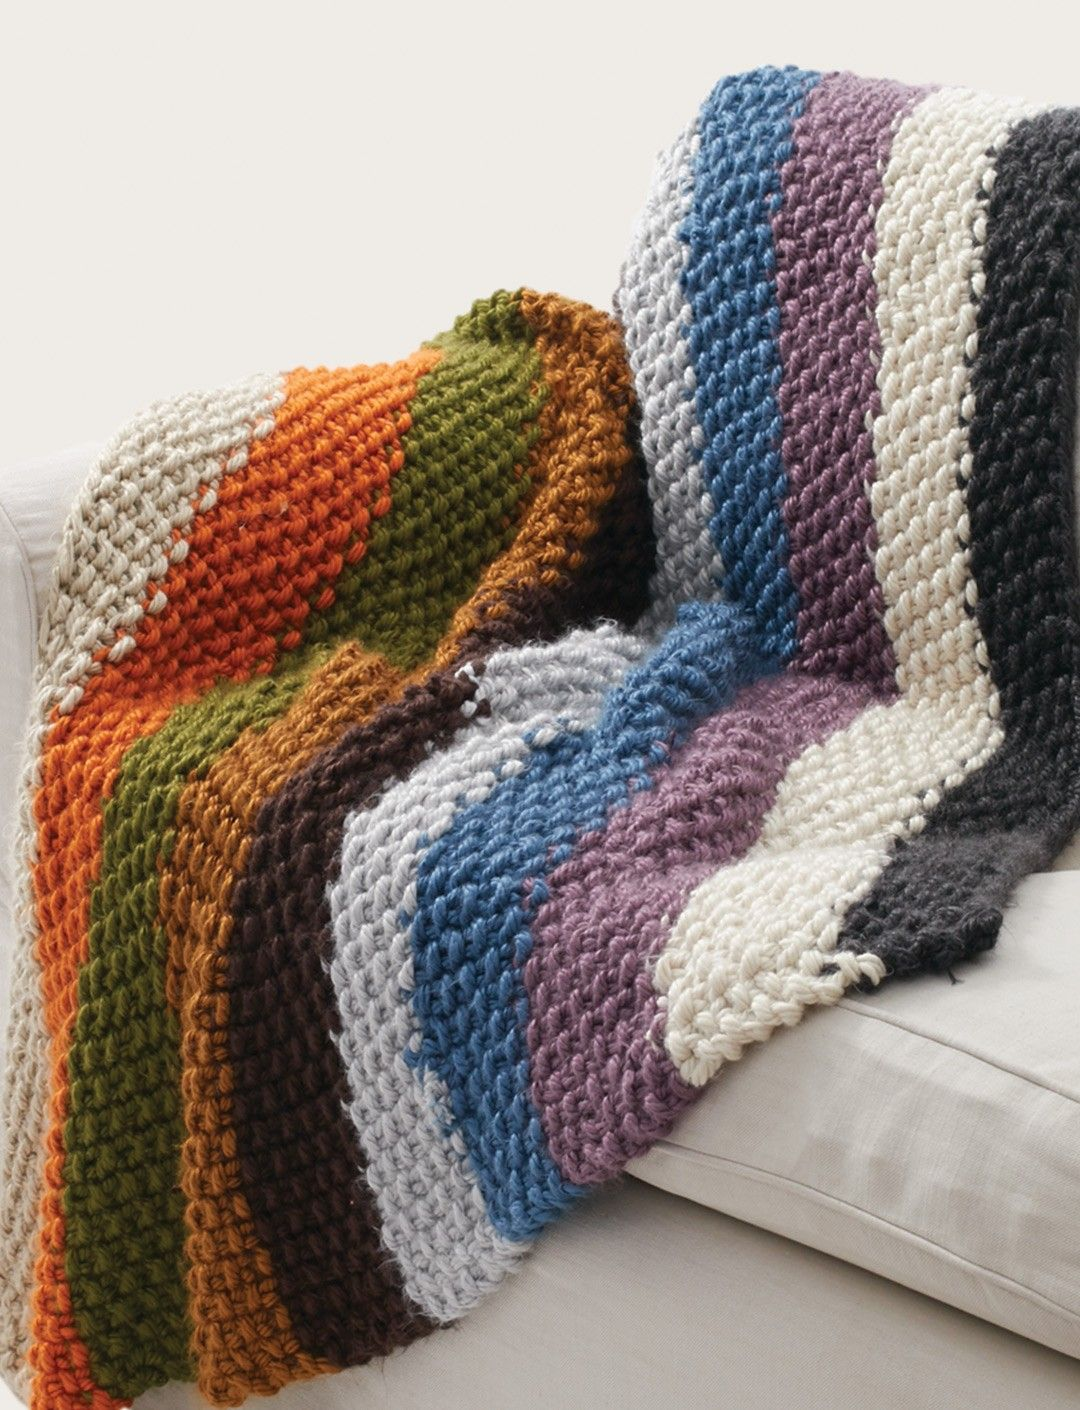 Bernat Seed Stitch Blanket - Cozy chunky rainbow striped knit ...